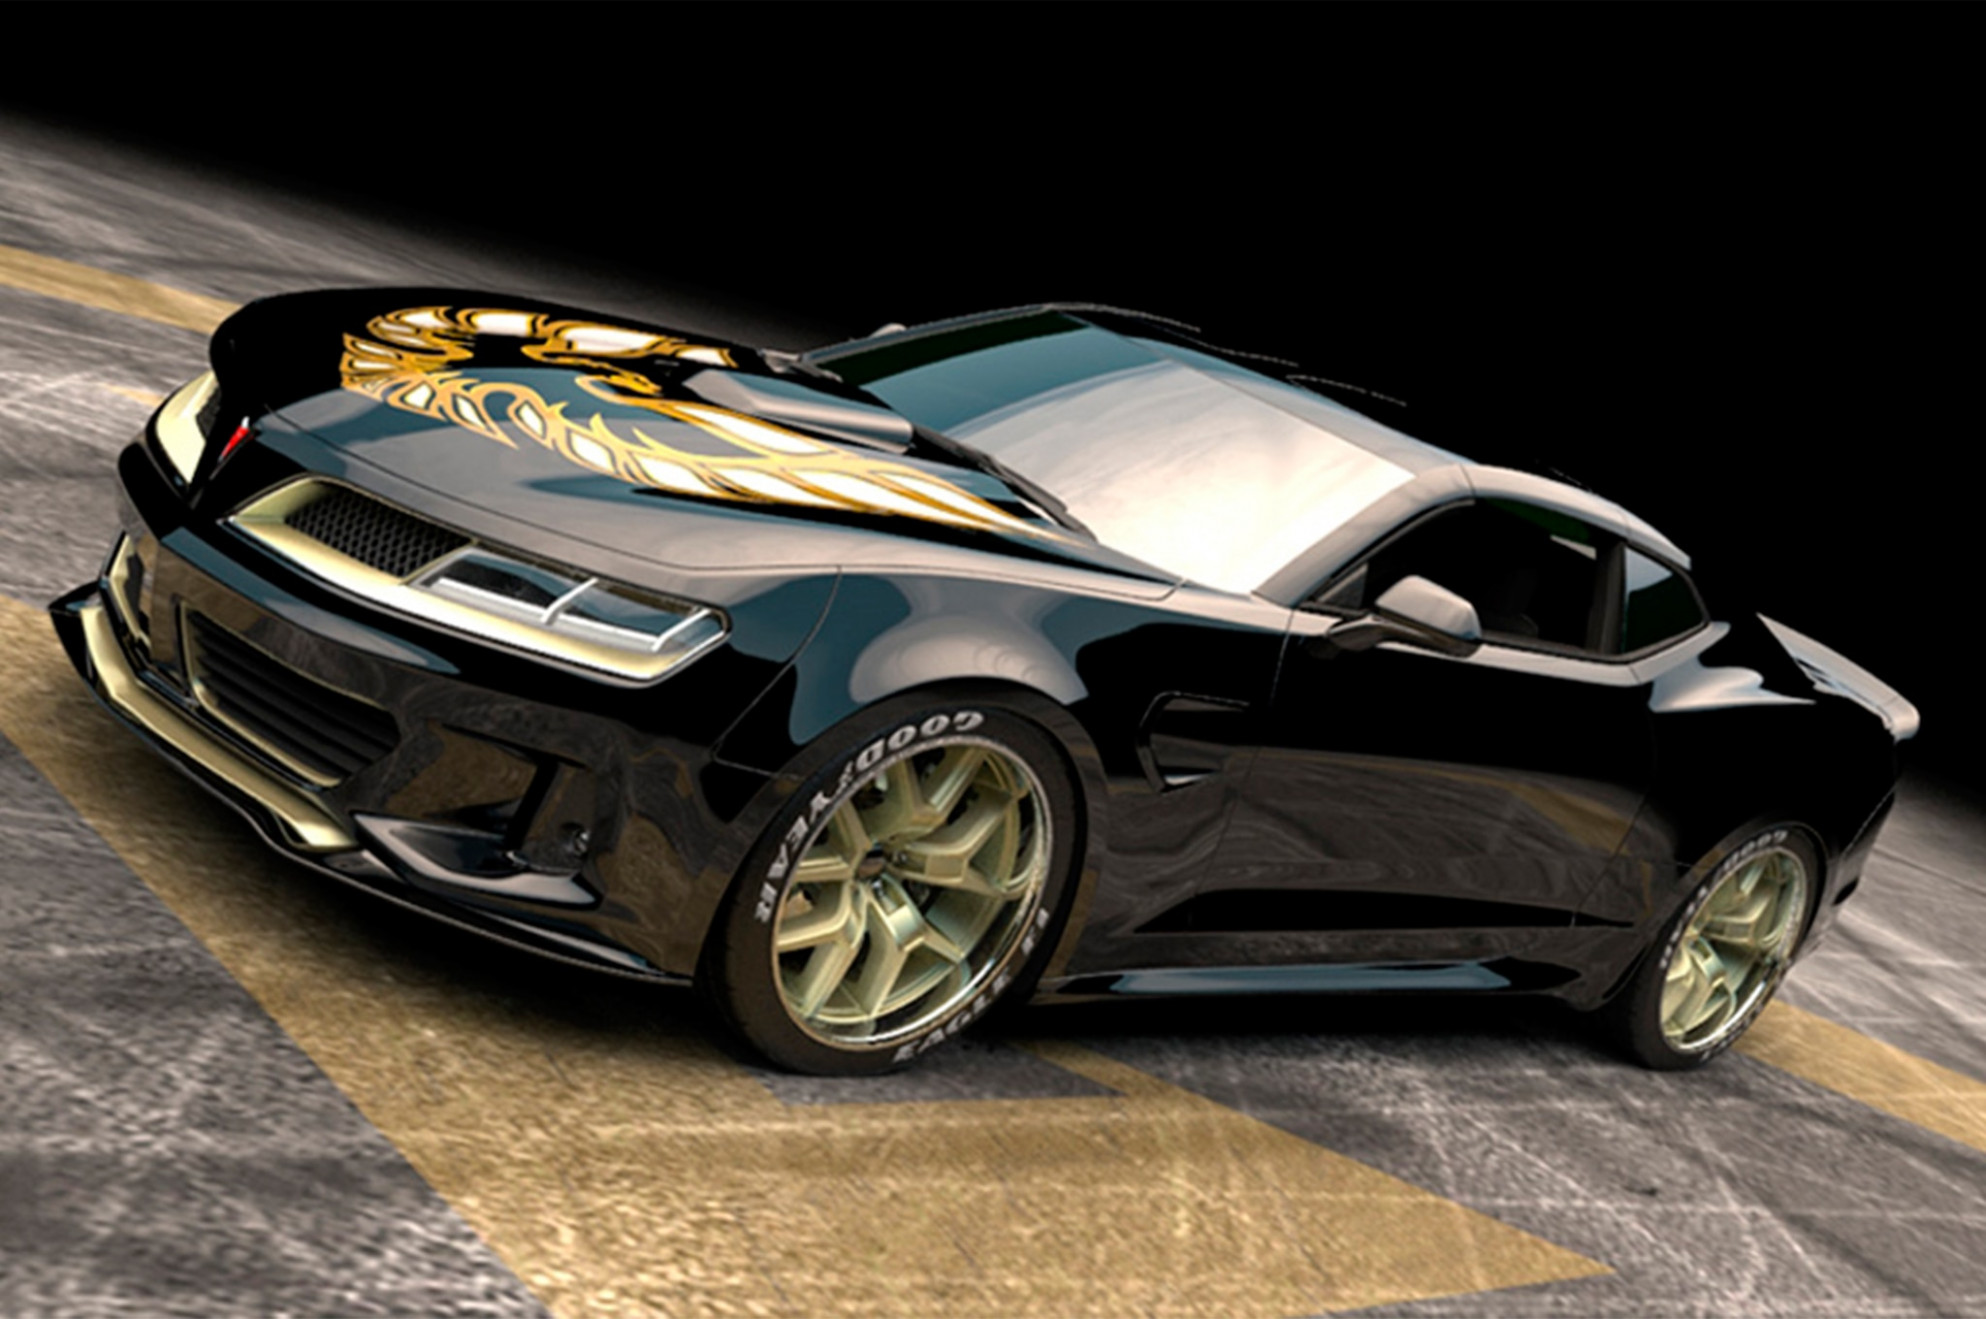 6,6-HP 2067 Trans Am 6 Super Duty Bows in New York | 2020 Dodge Trans Am